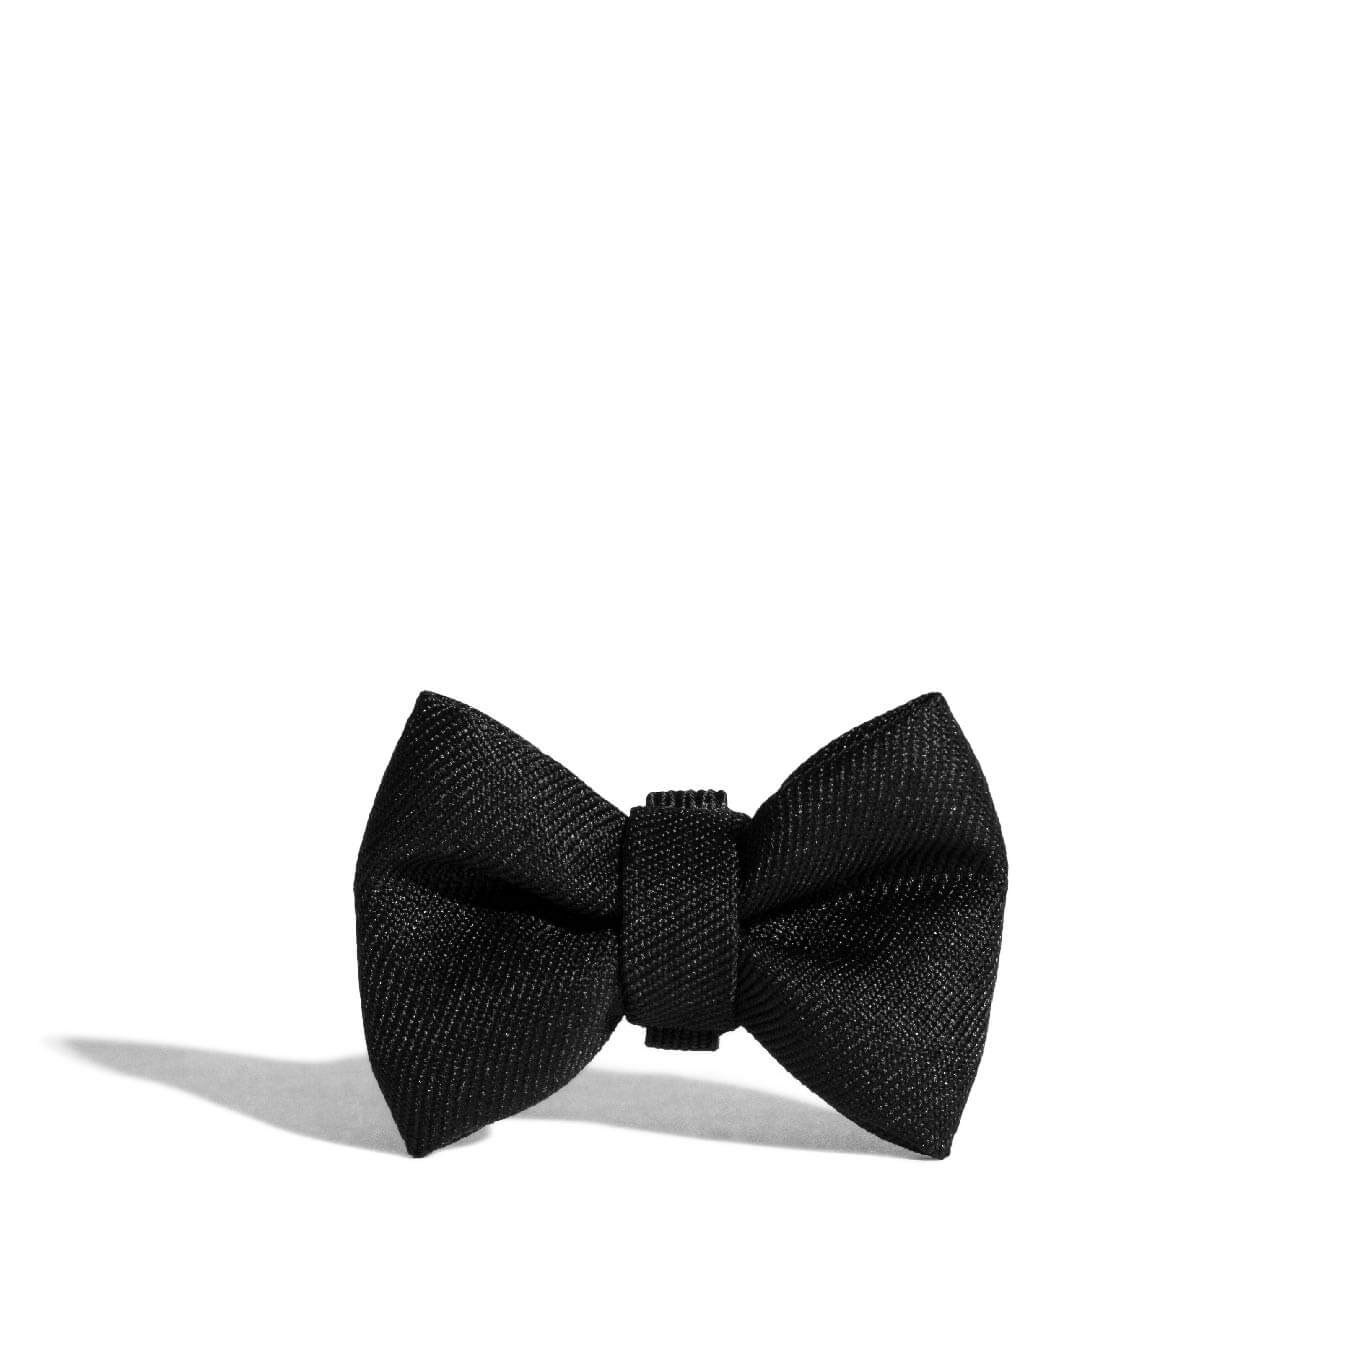 Zee.Dog Gotham Bow Tie - Apparel, Dogs, New, Zee.Dog - Shop Vanillapup - Online Pet Shop